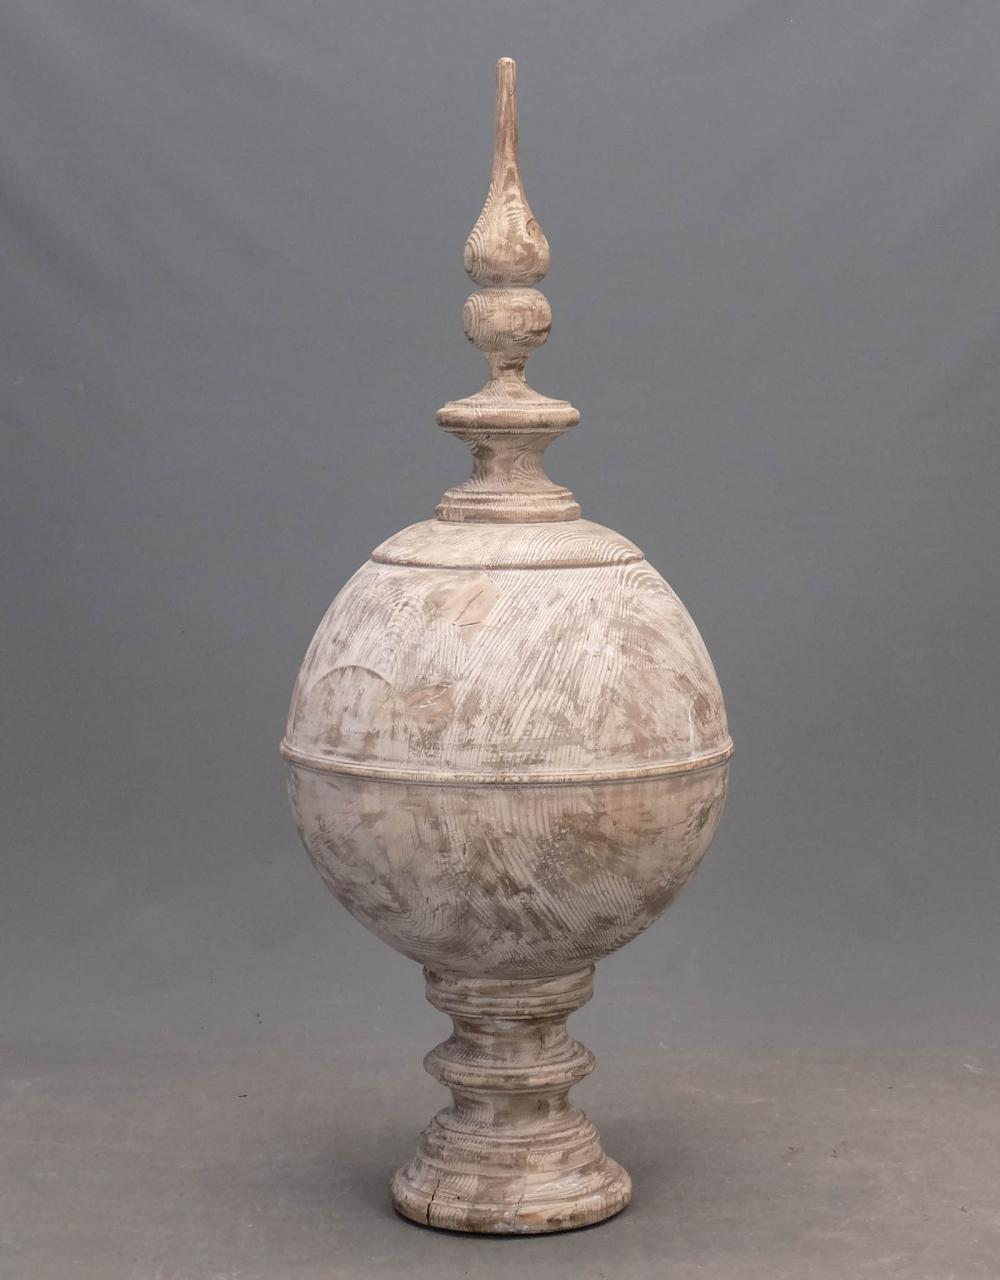 Wooden Architectural Finial